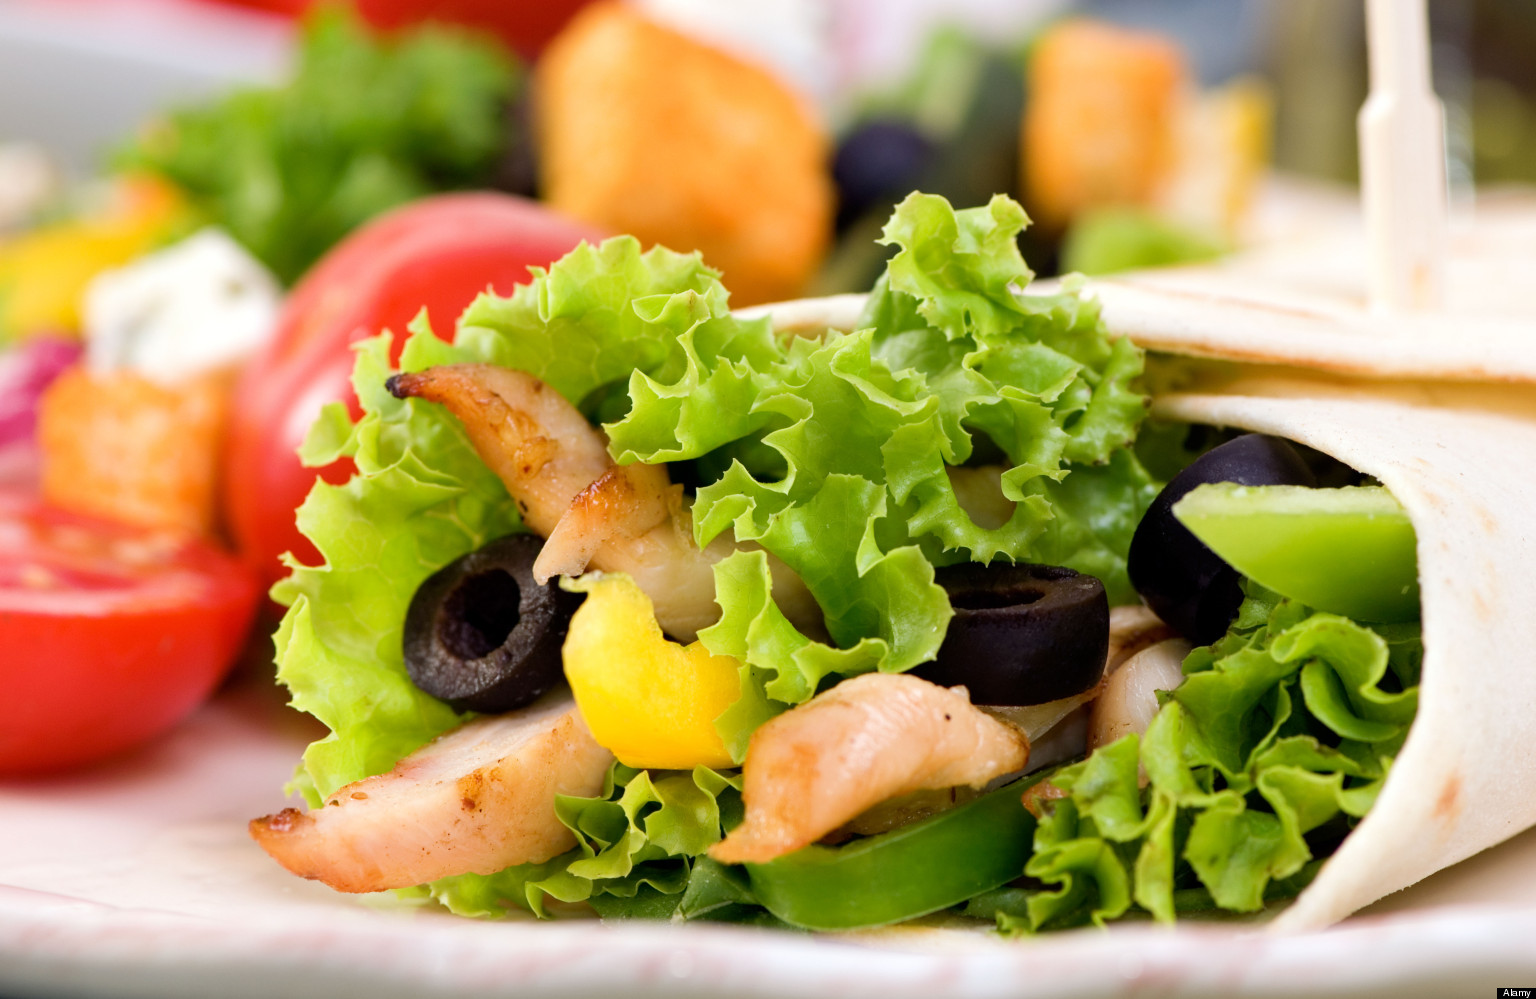 Fast and smart how to pick healthier fast food options for Cuisine healthy